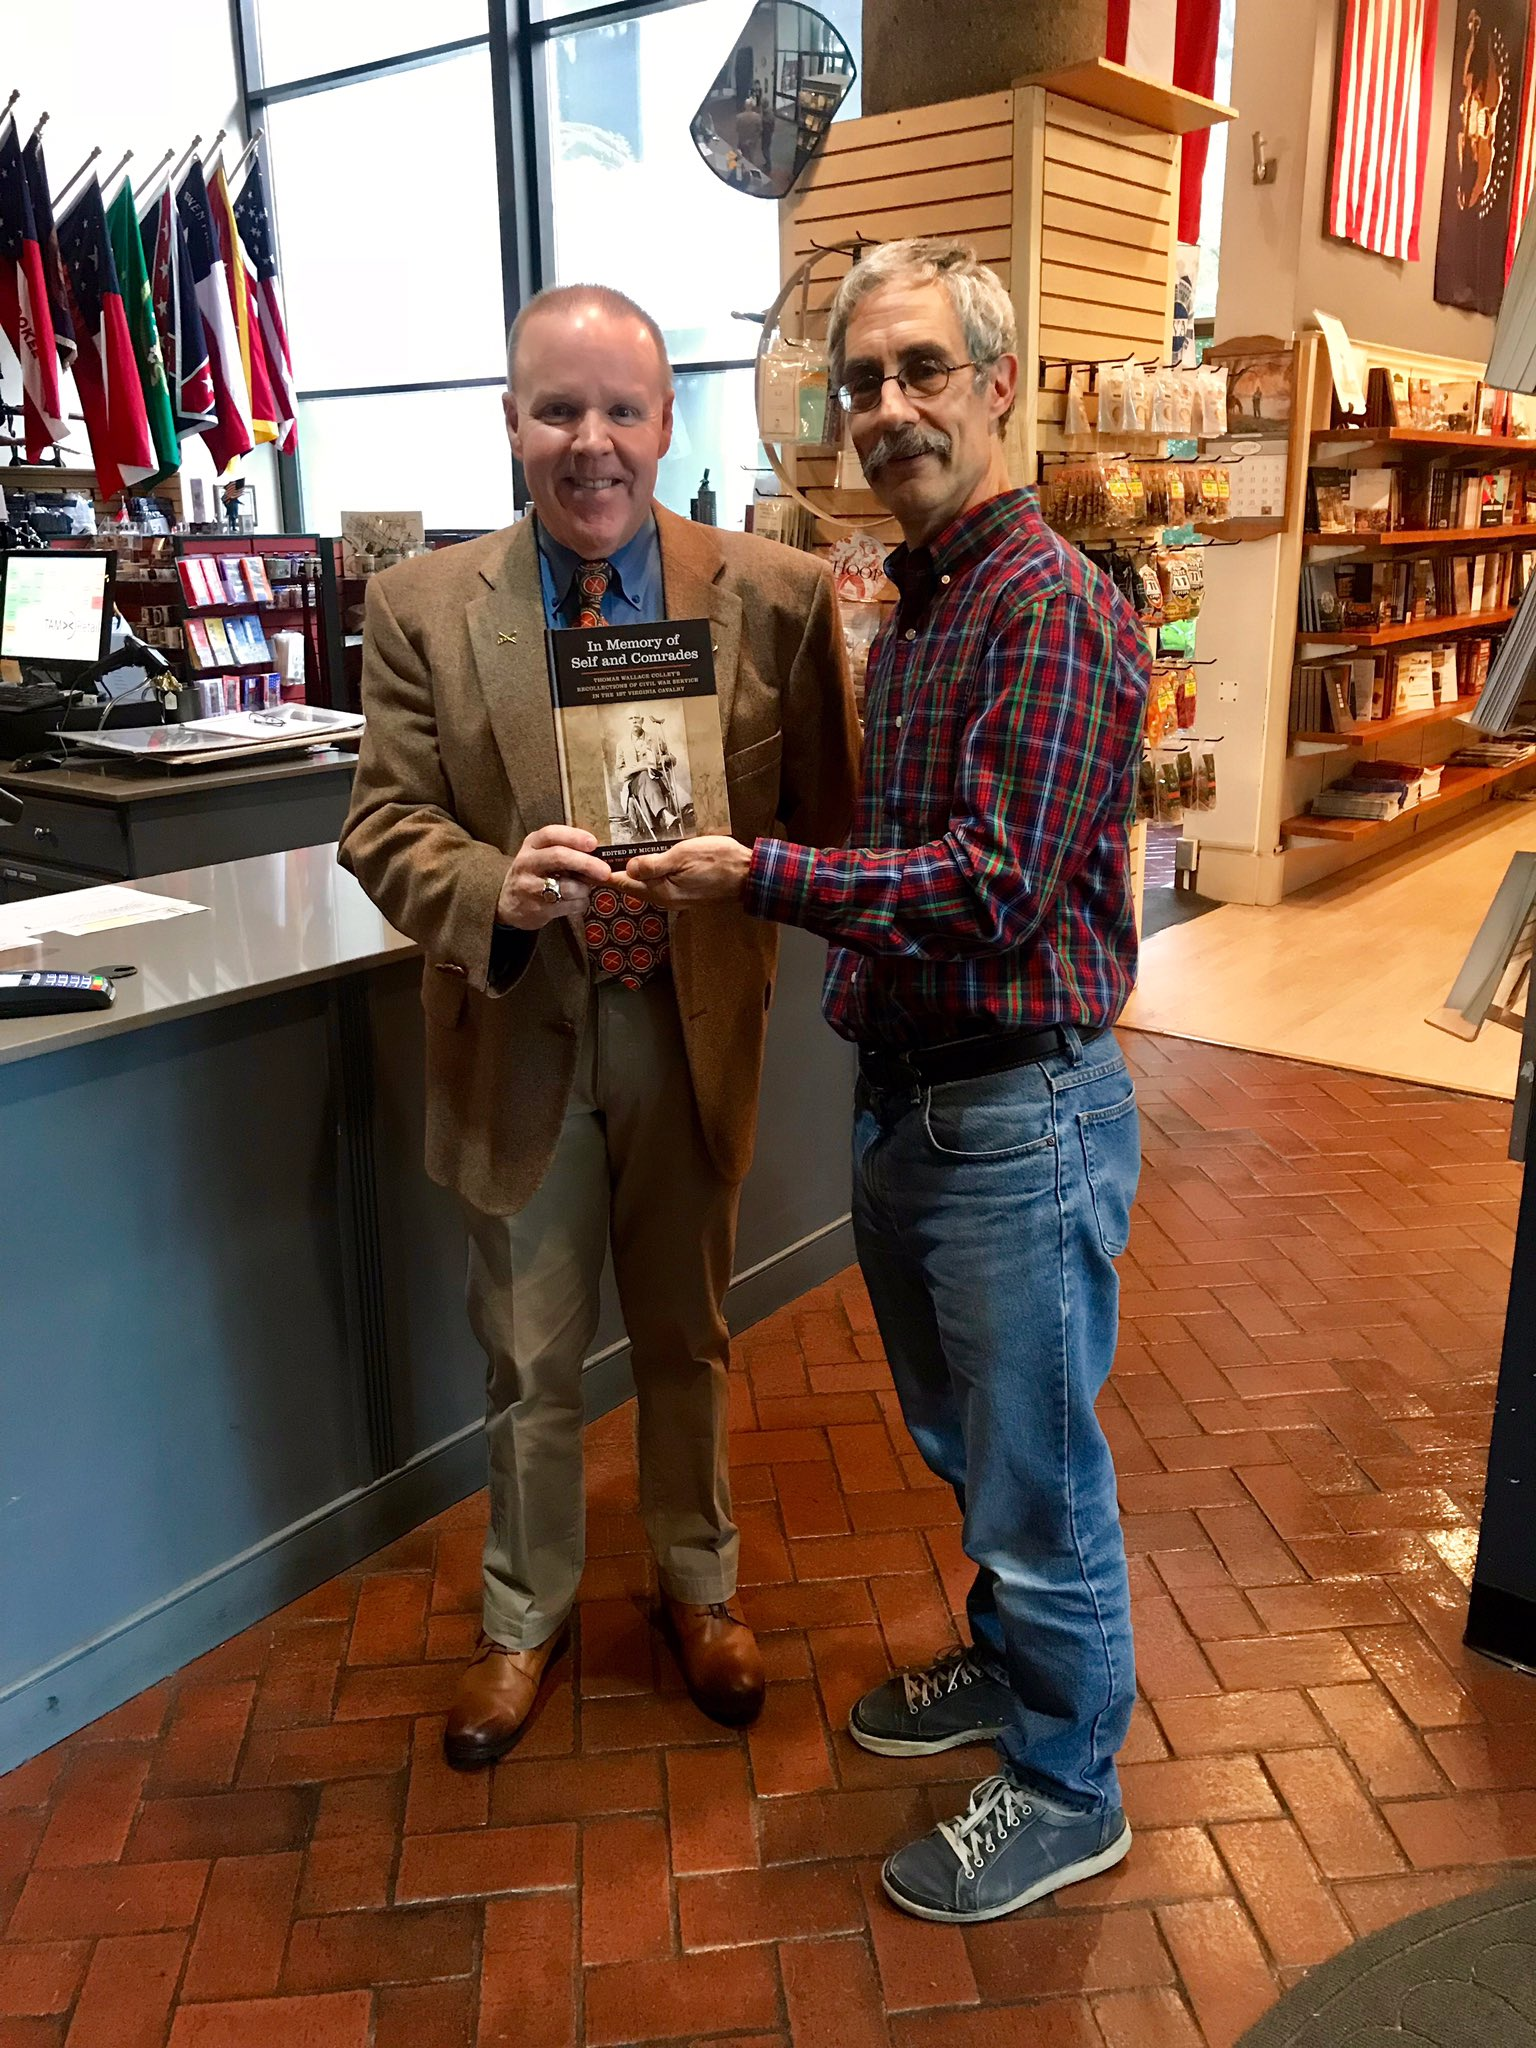 I had an enjoyable day in Richmond! After speaking at the American Civil WarMuseum, I visited battlefields of Haw's Shop (photos), Cold Harbor, Gaines' Mill, and Seven Pines/Fair Oaks. Thanks to John Coski for his help with the book! @utennpress @RichmondNPS @ACWMuseum #CivilWar https://t.co/njm8iPKFEF